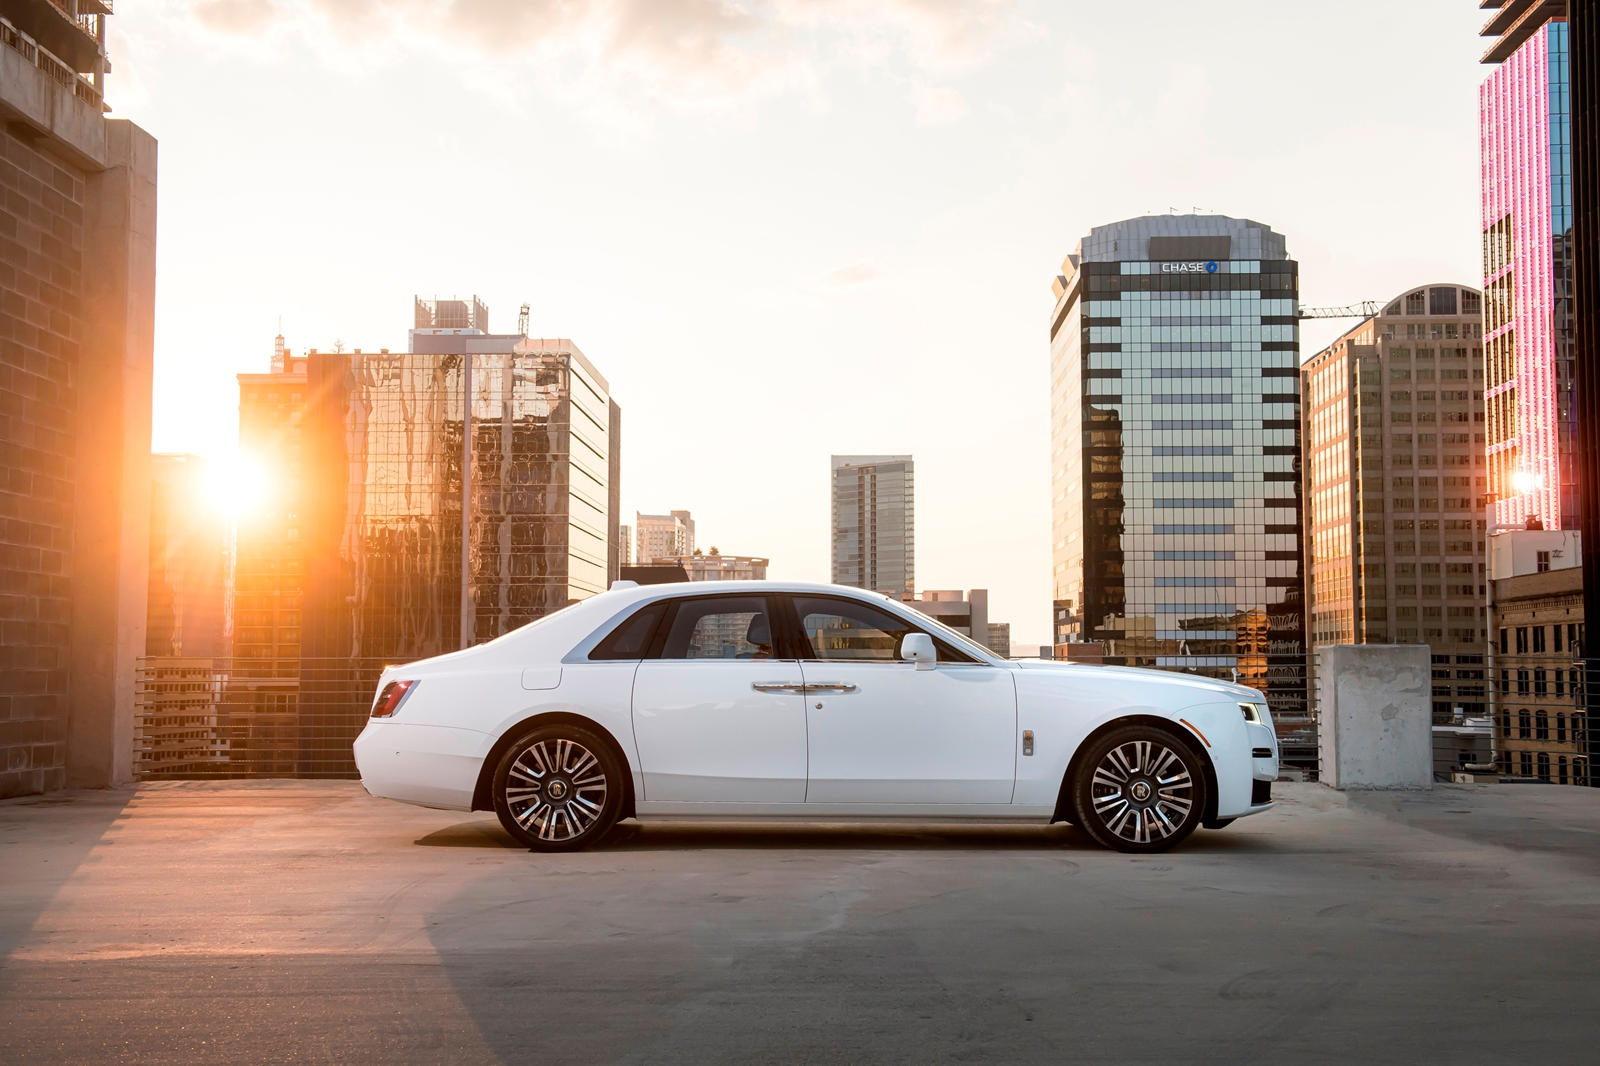 Danh gia Rolls-Royce Ghost 2021 anh 3